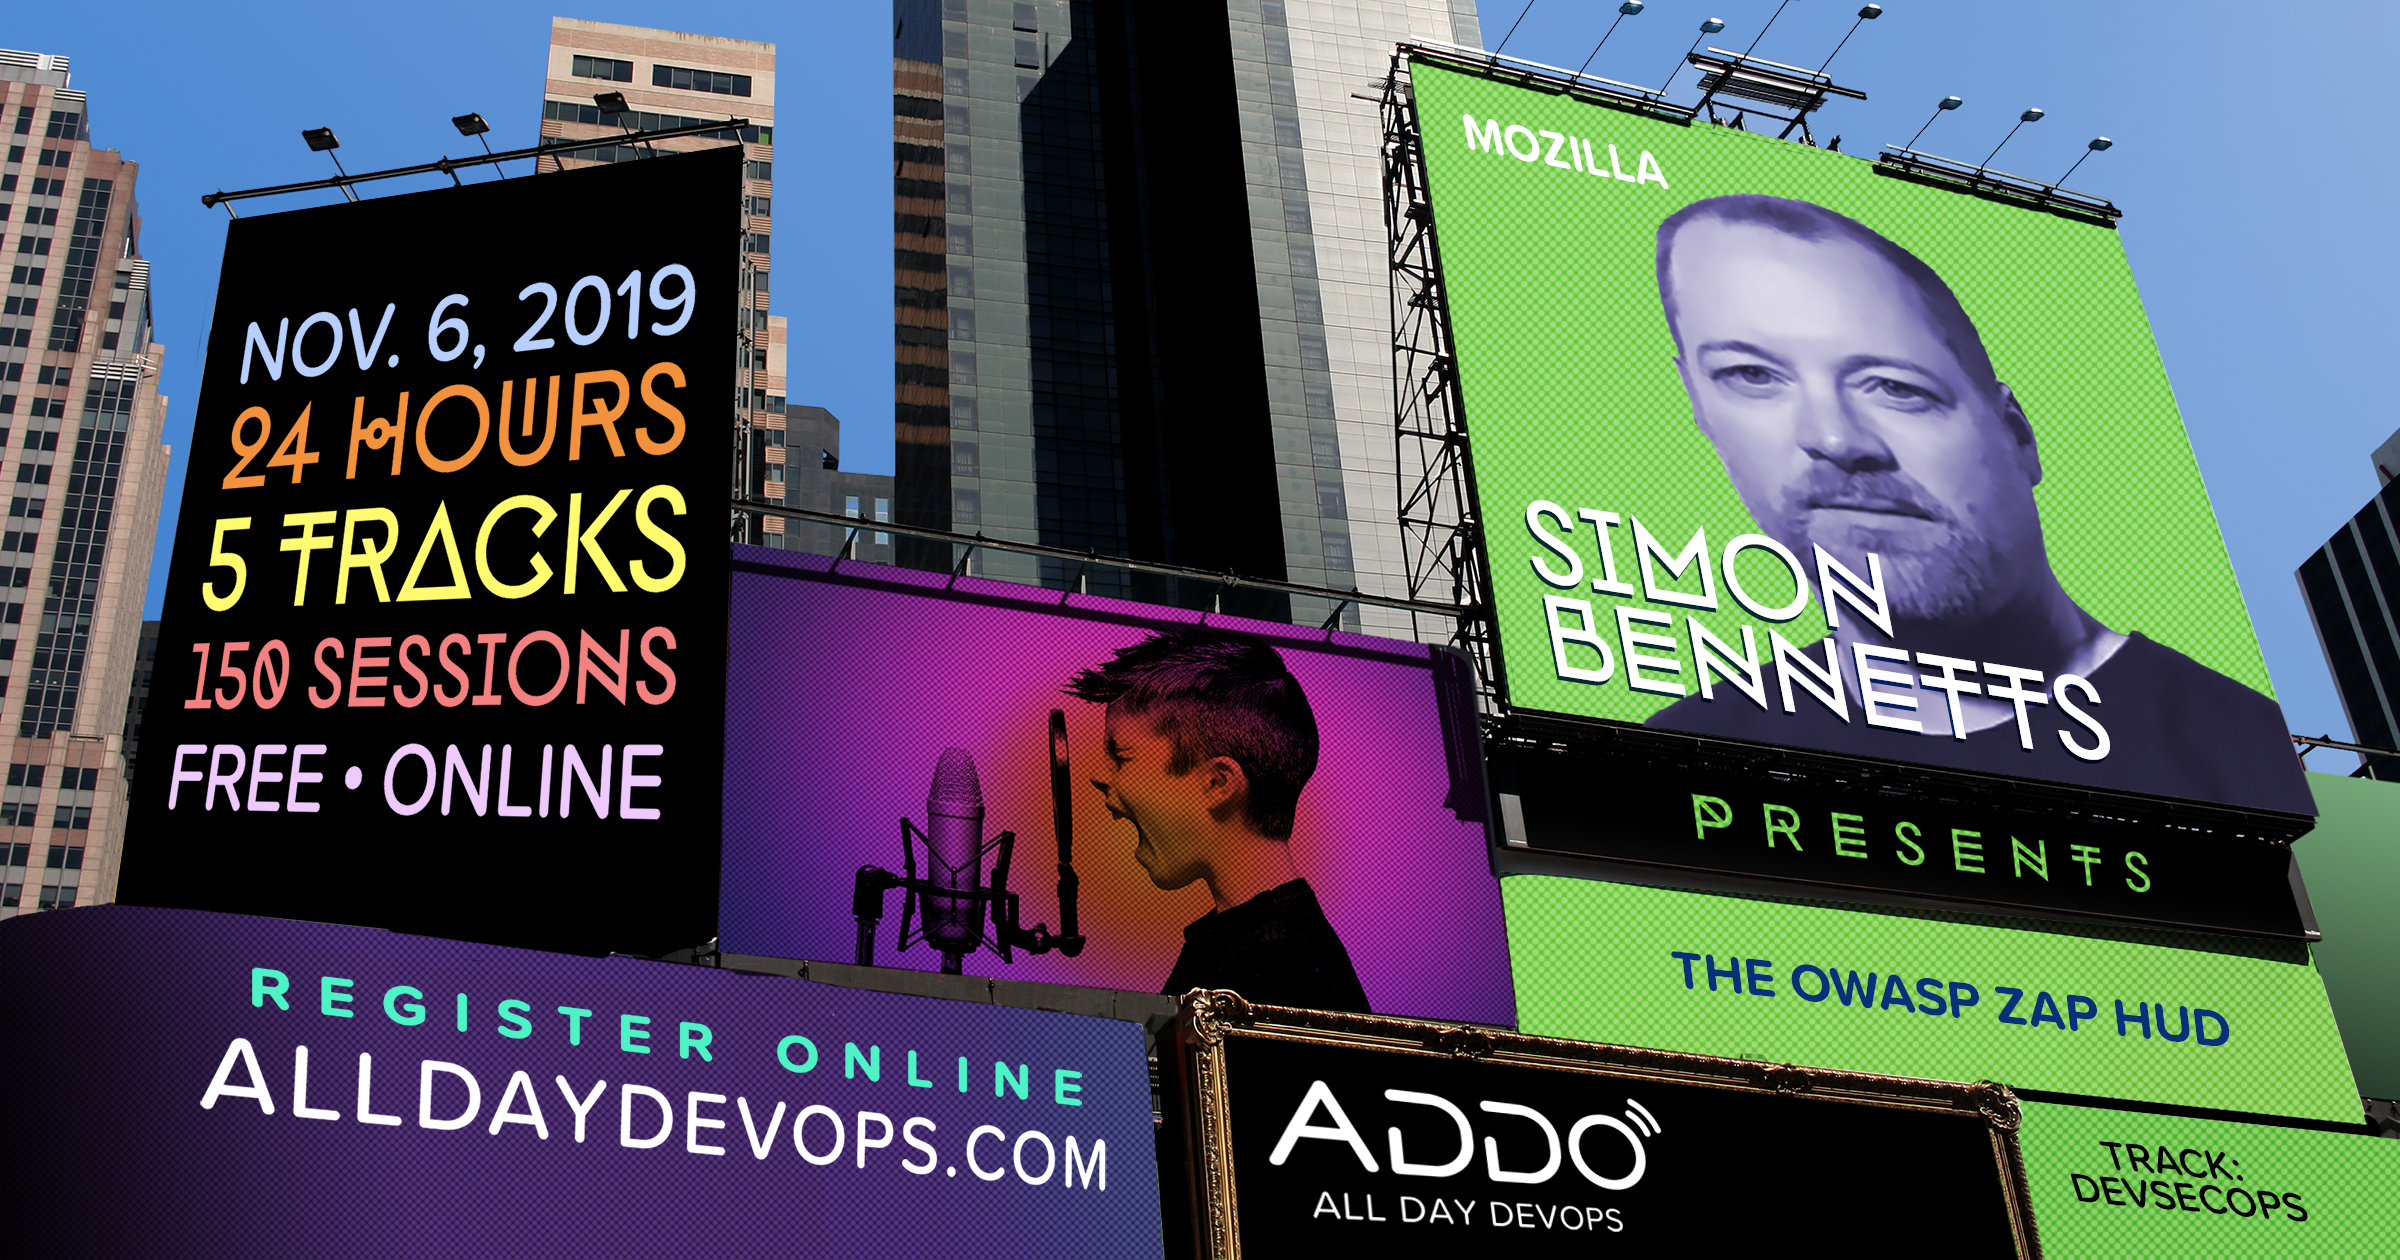 SimonBennetts_Billboard